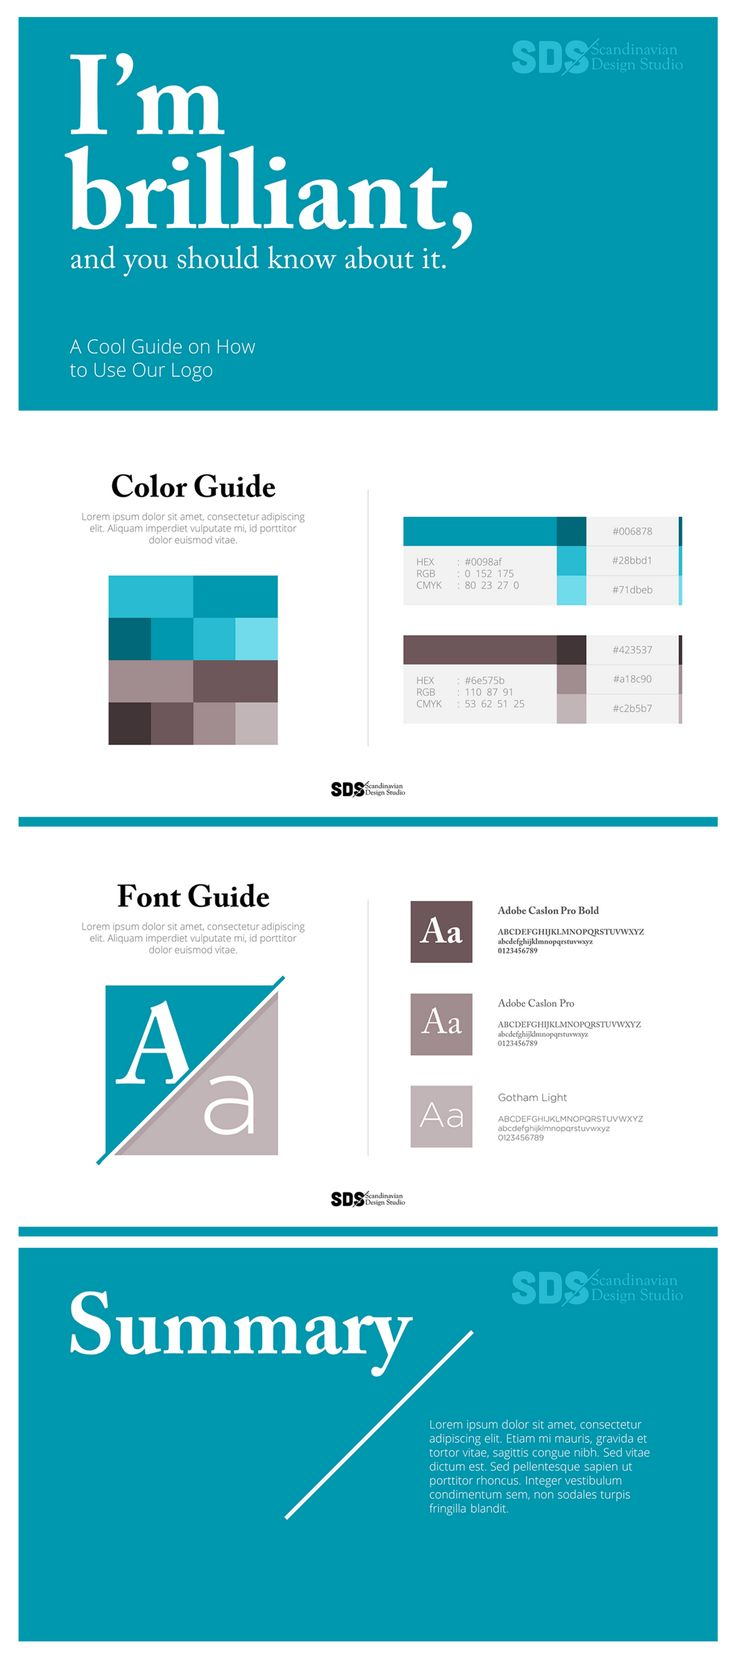 Choose a Scandinavian graphic design for the simple yet impressionable look. PowerPoint Presentation Design Inspiration